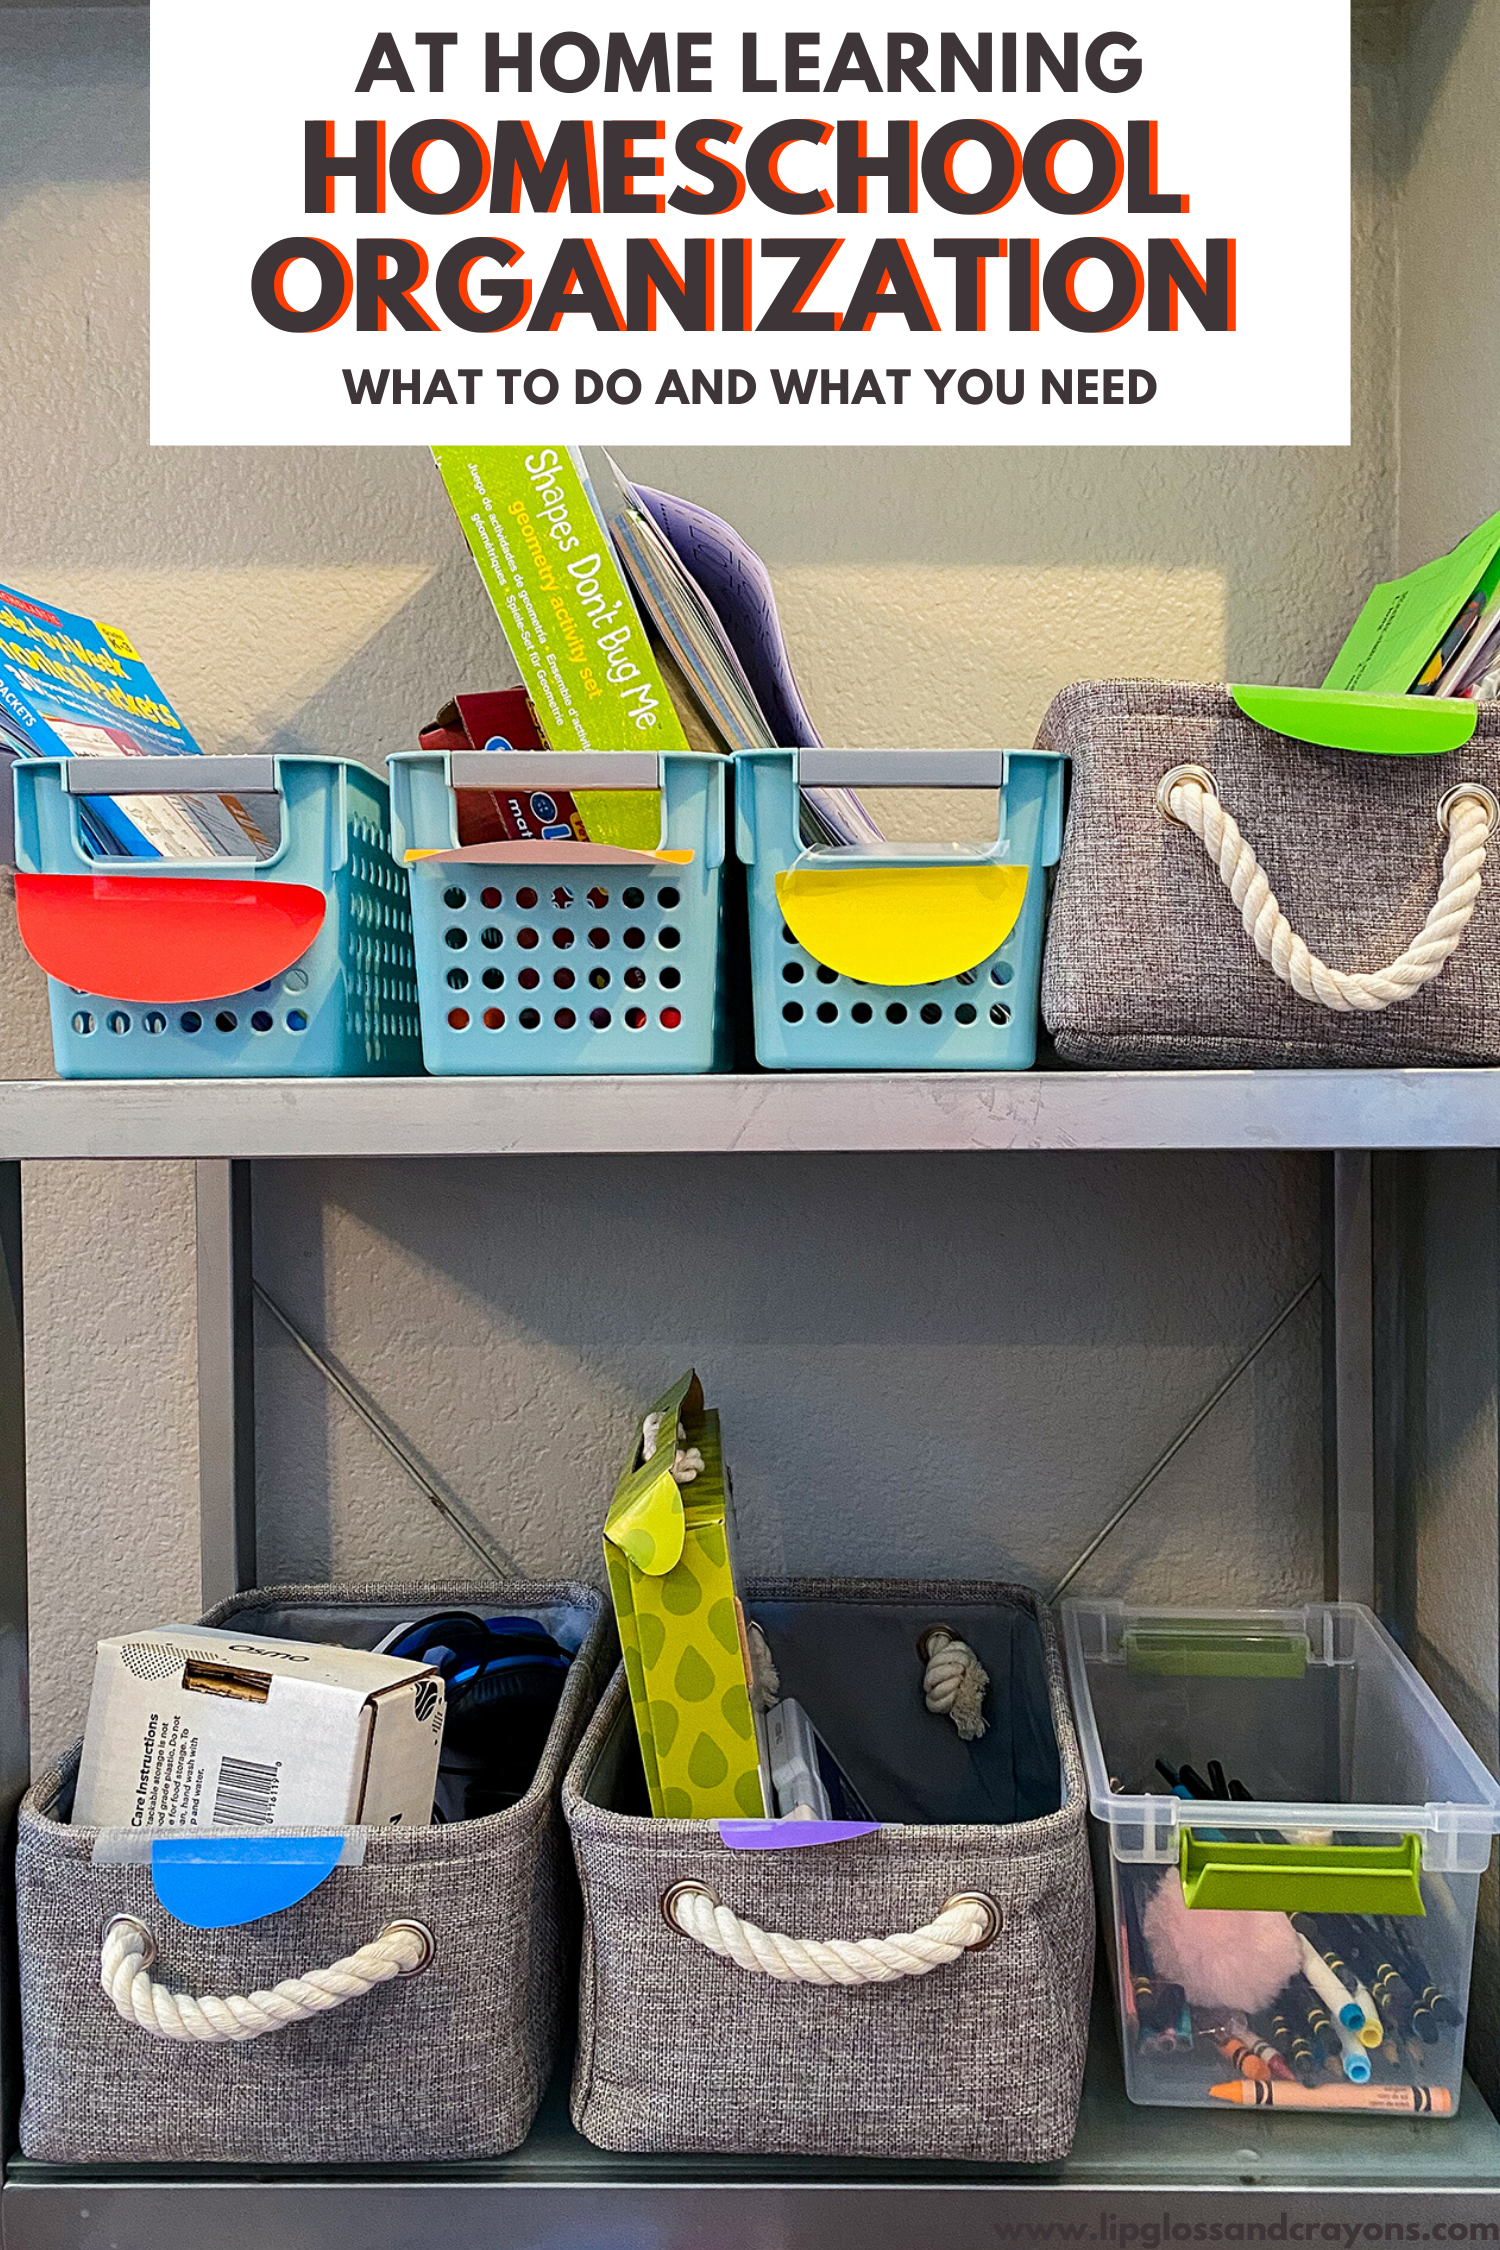 Homeschool Organization What To Do And What You Need